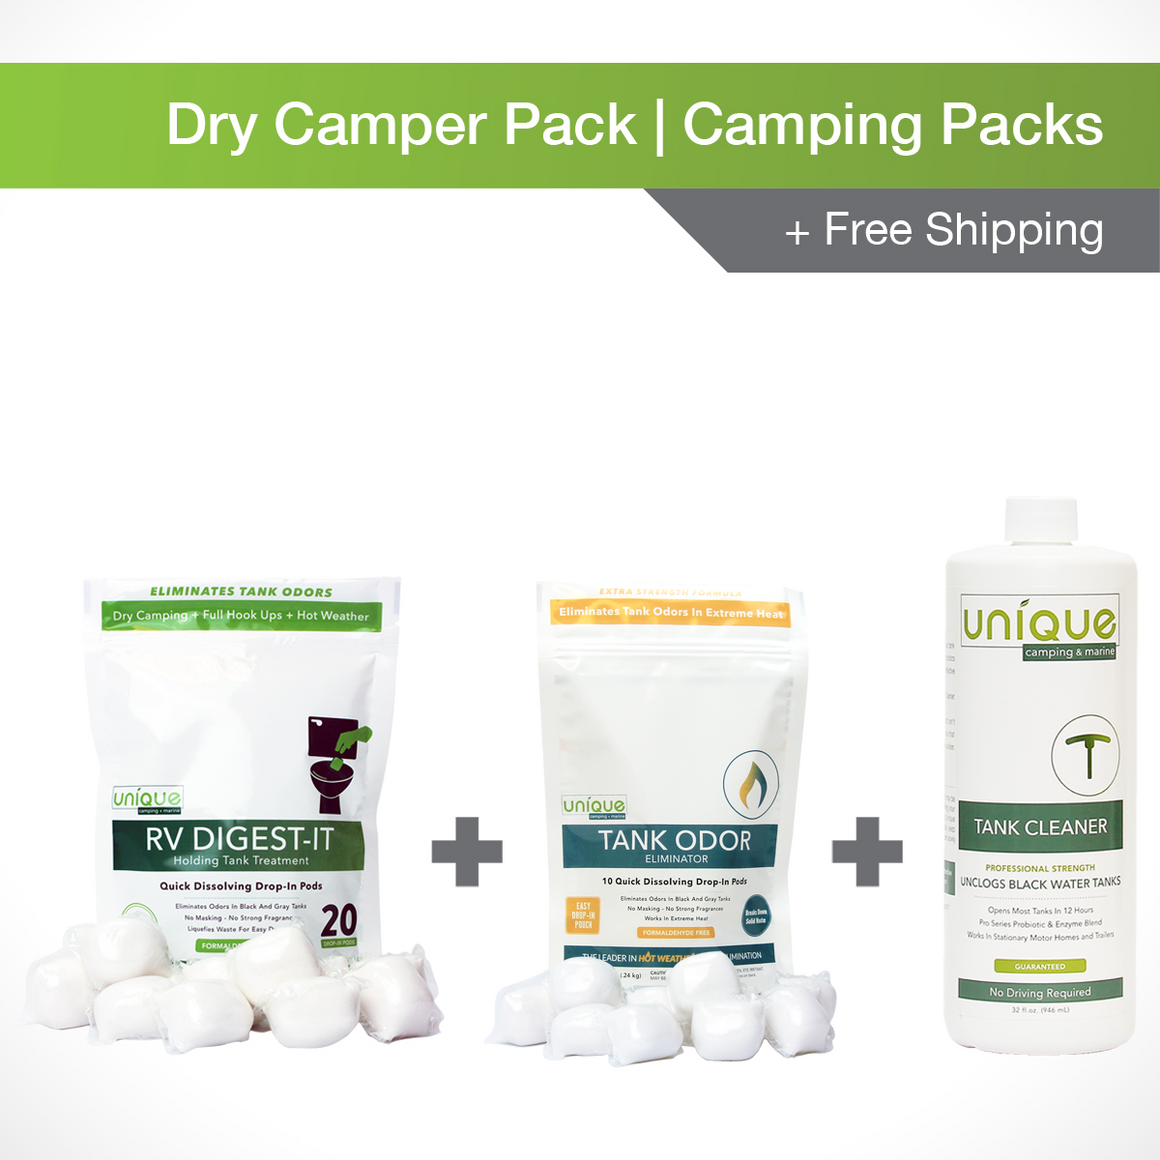 Dry Camper Pack + Free Shipping